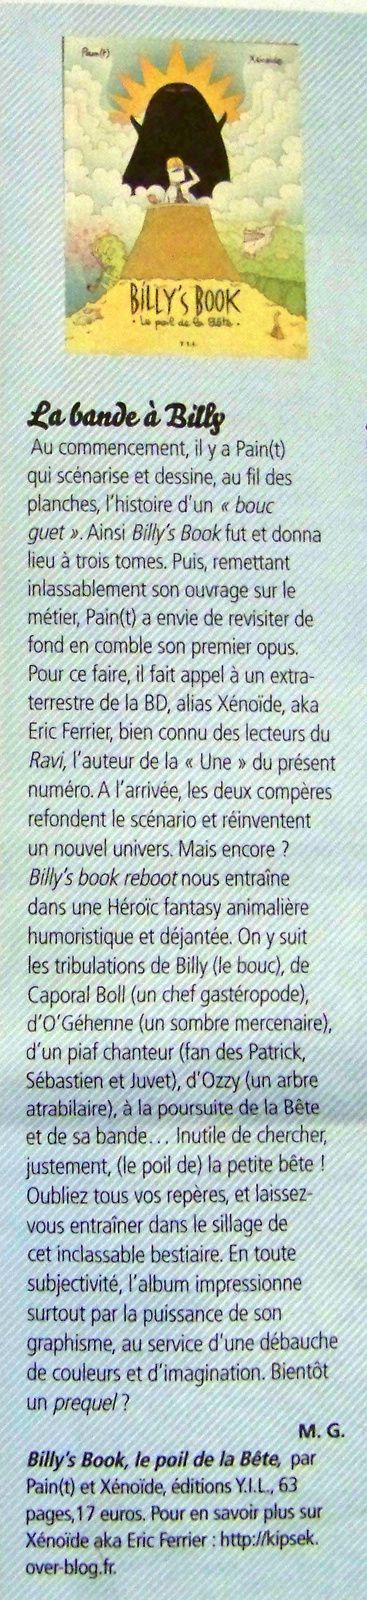 BILLY's BOOK dans le Ravi